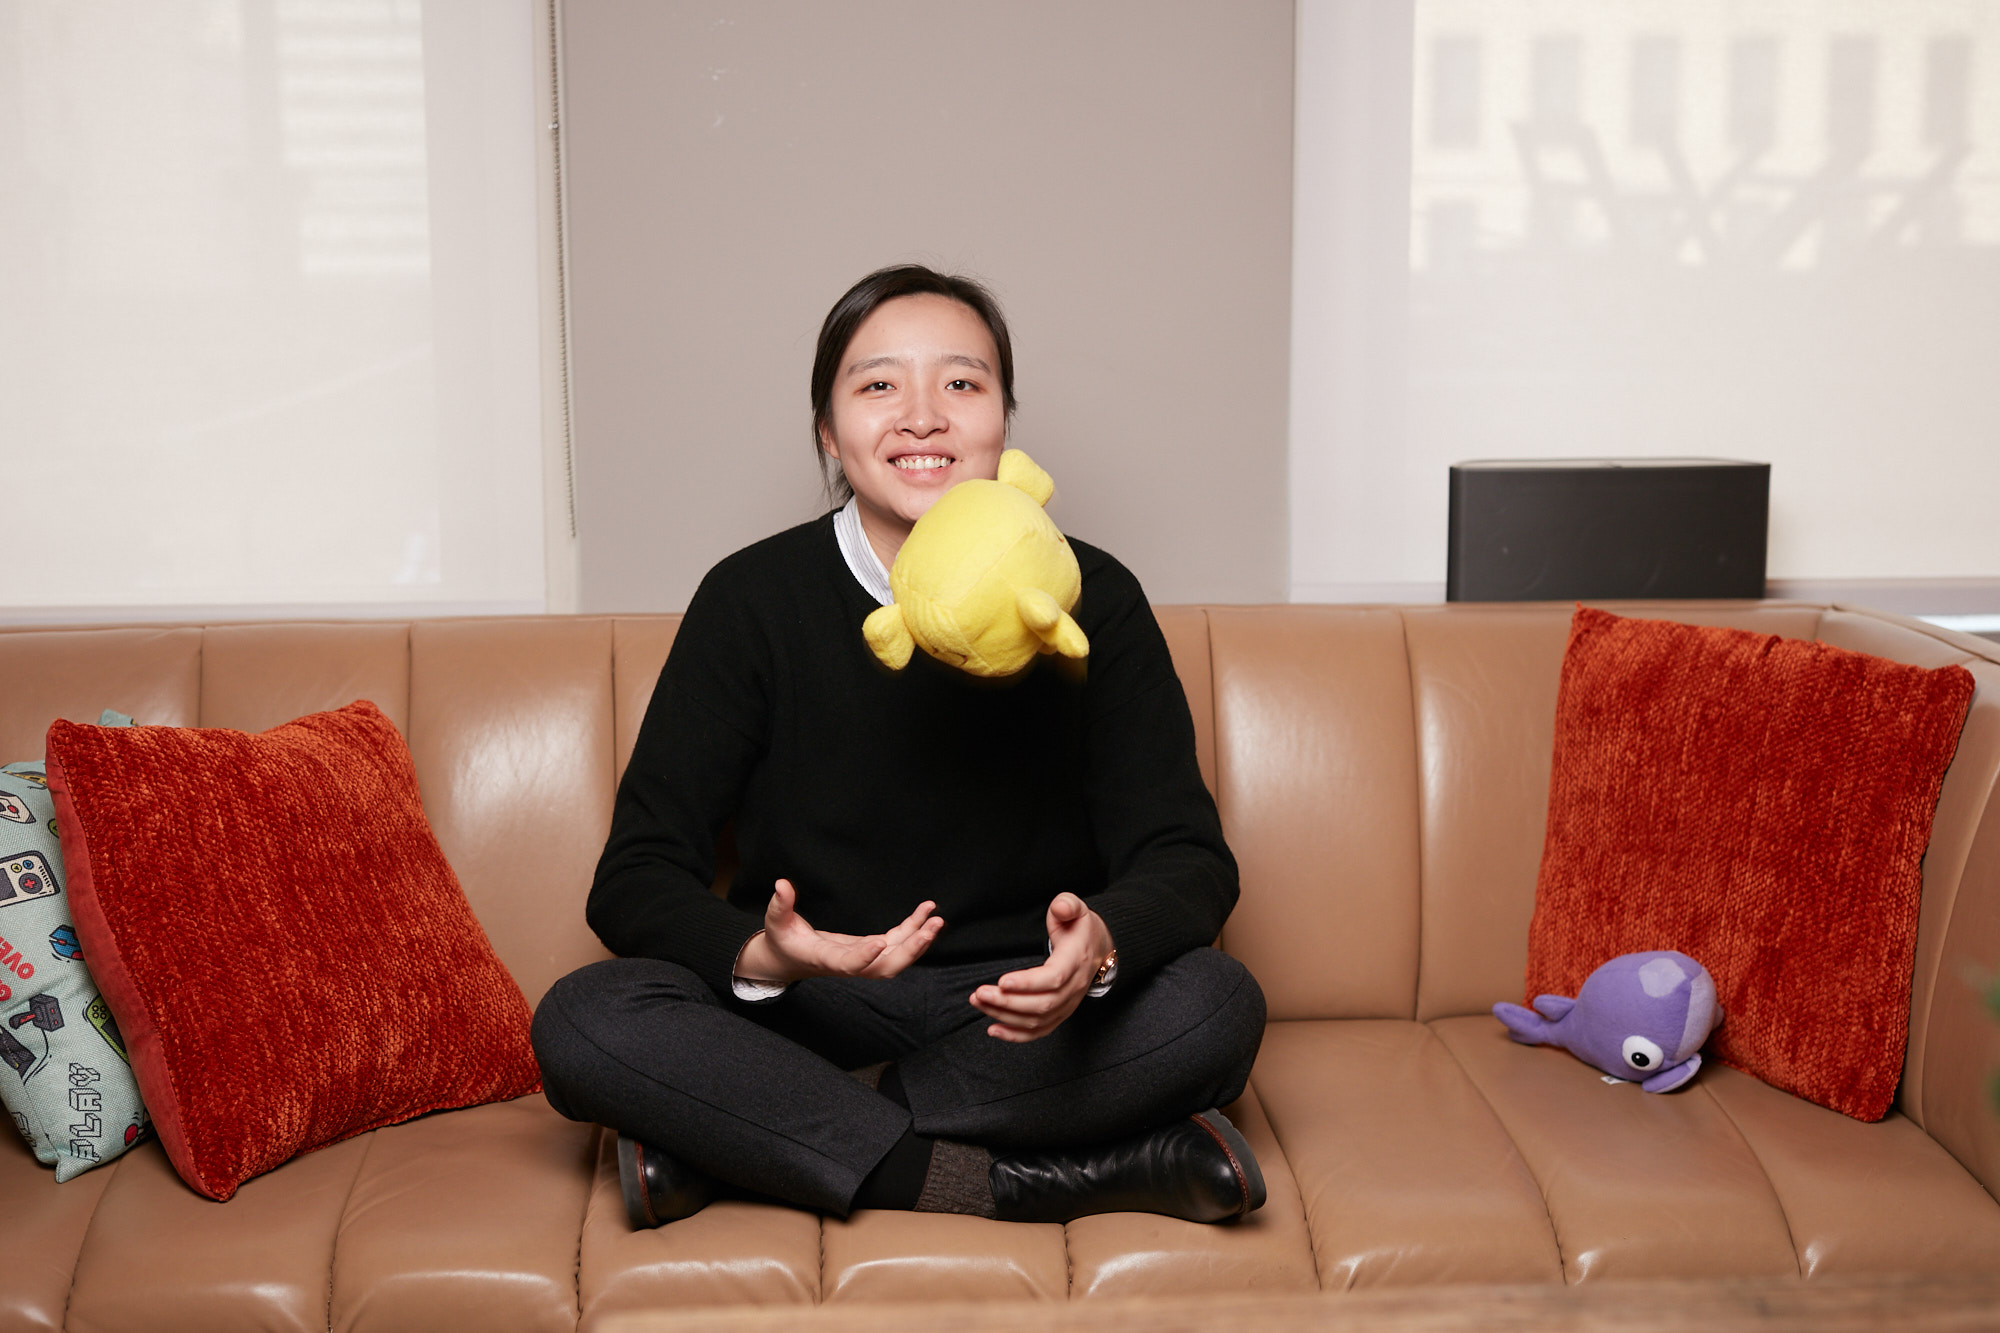 Dallas Portrait Photographer | Casual Business Portraits of Tilting Point Marketing Manager tossing a plush toy